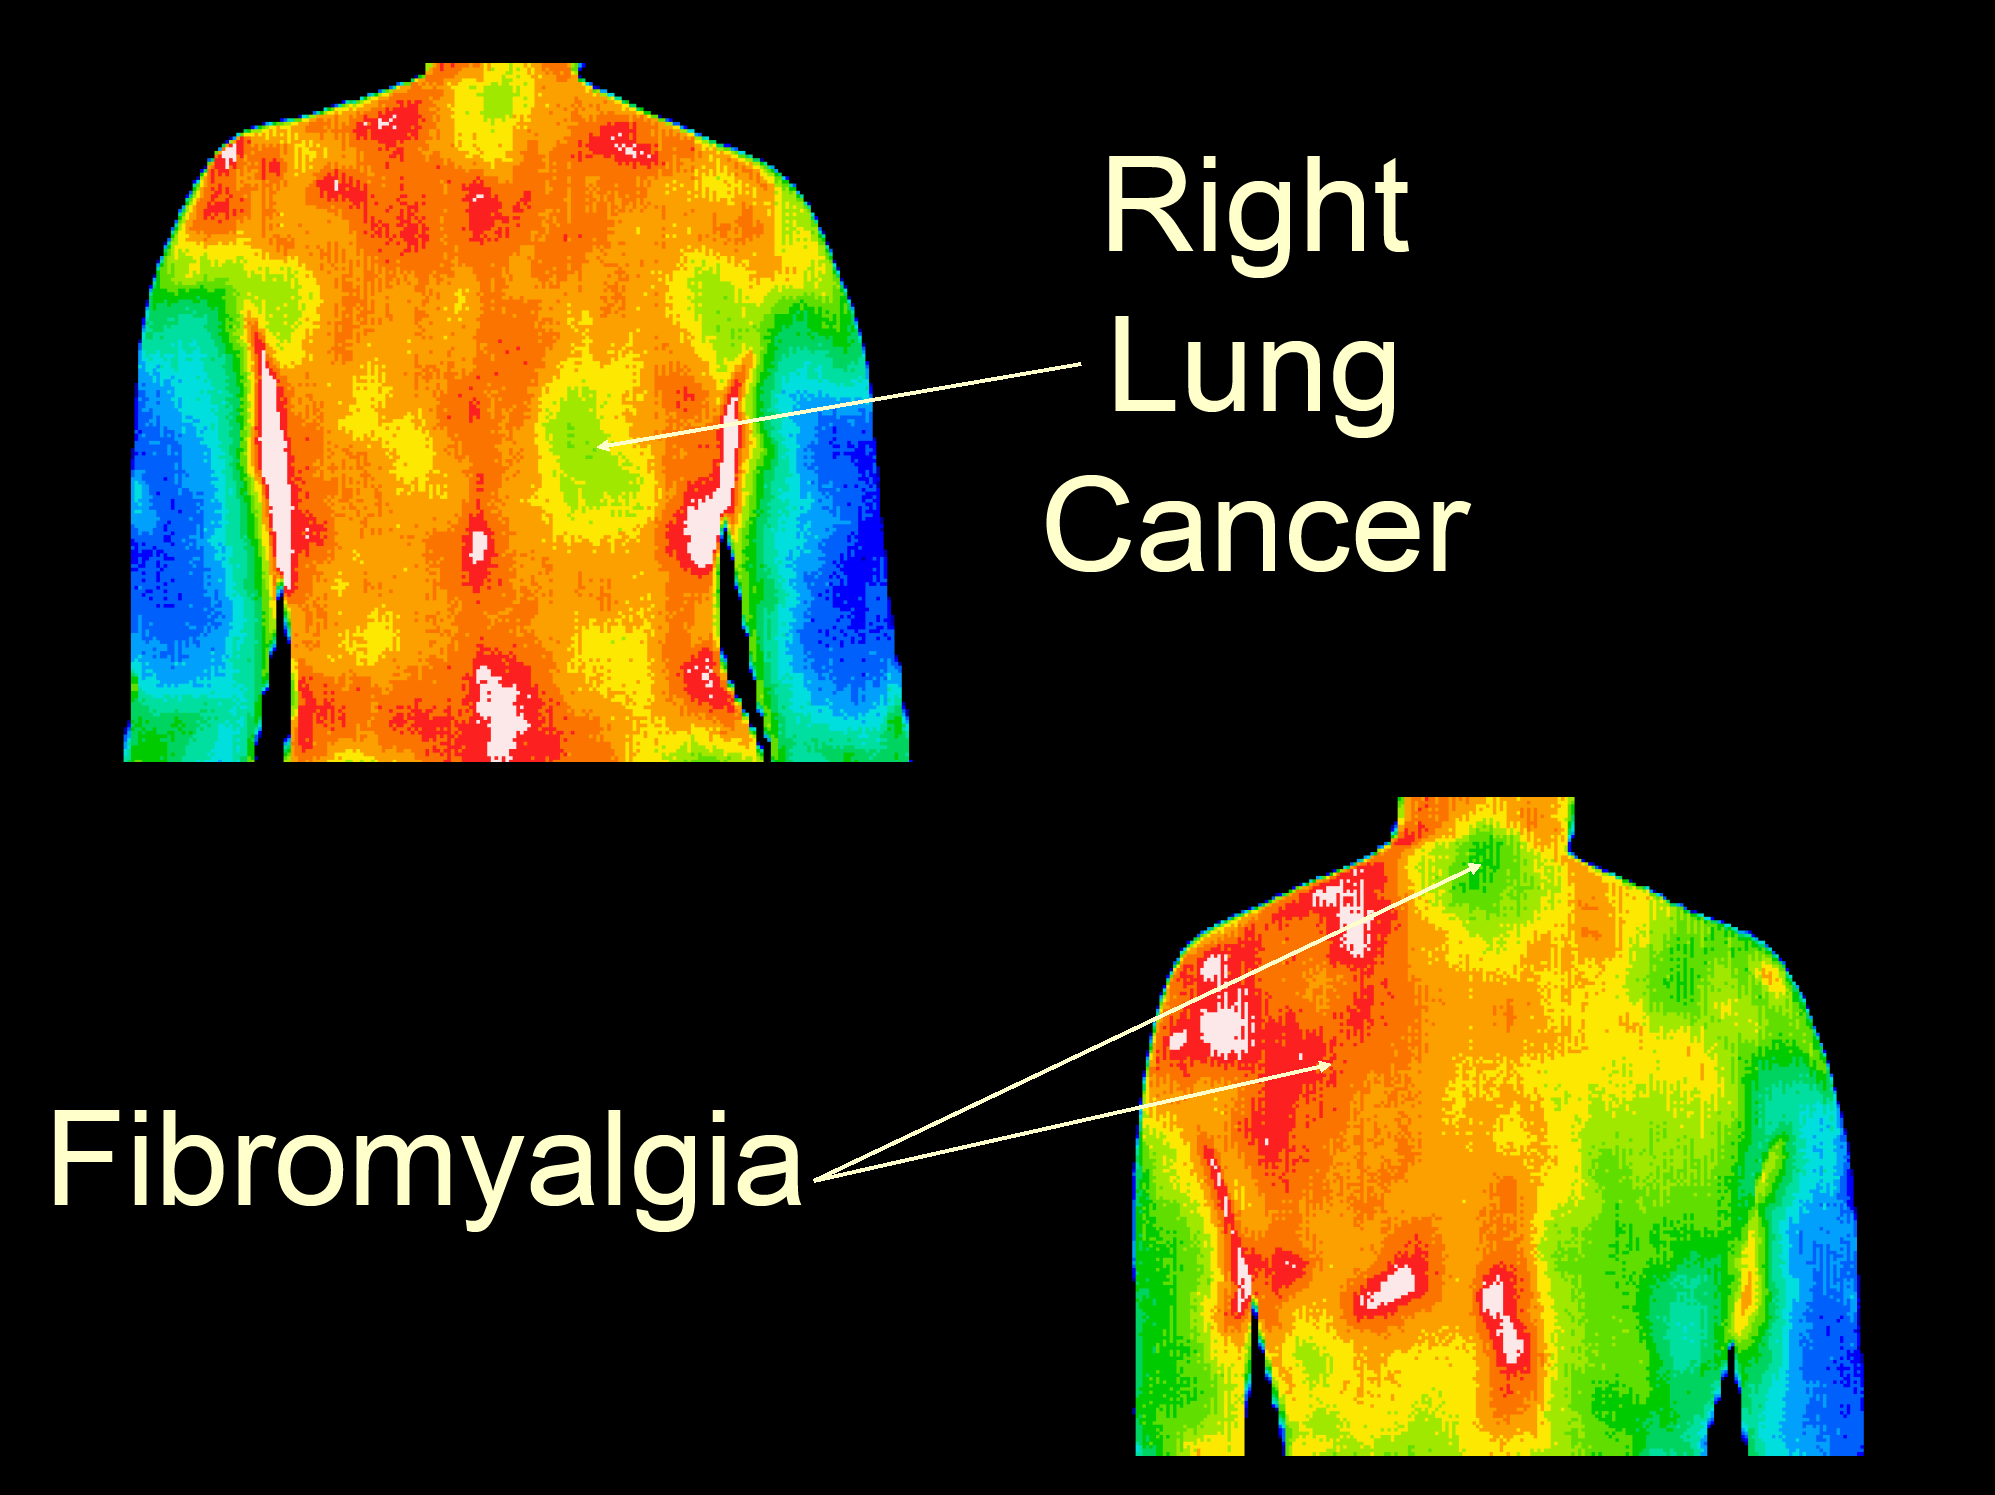 1.Right Lung Cancer